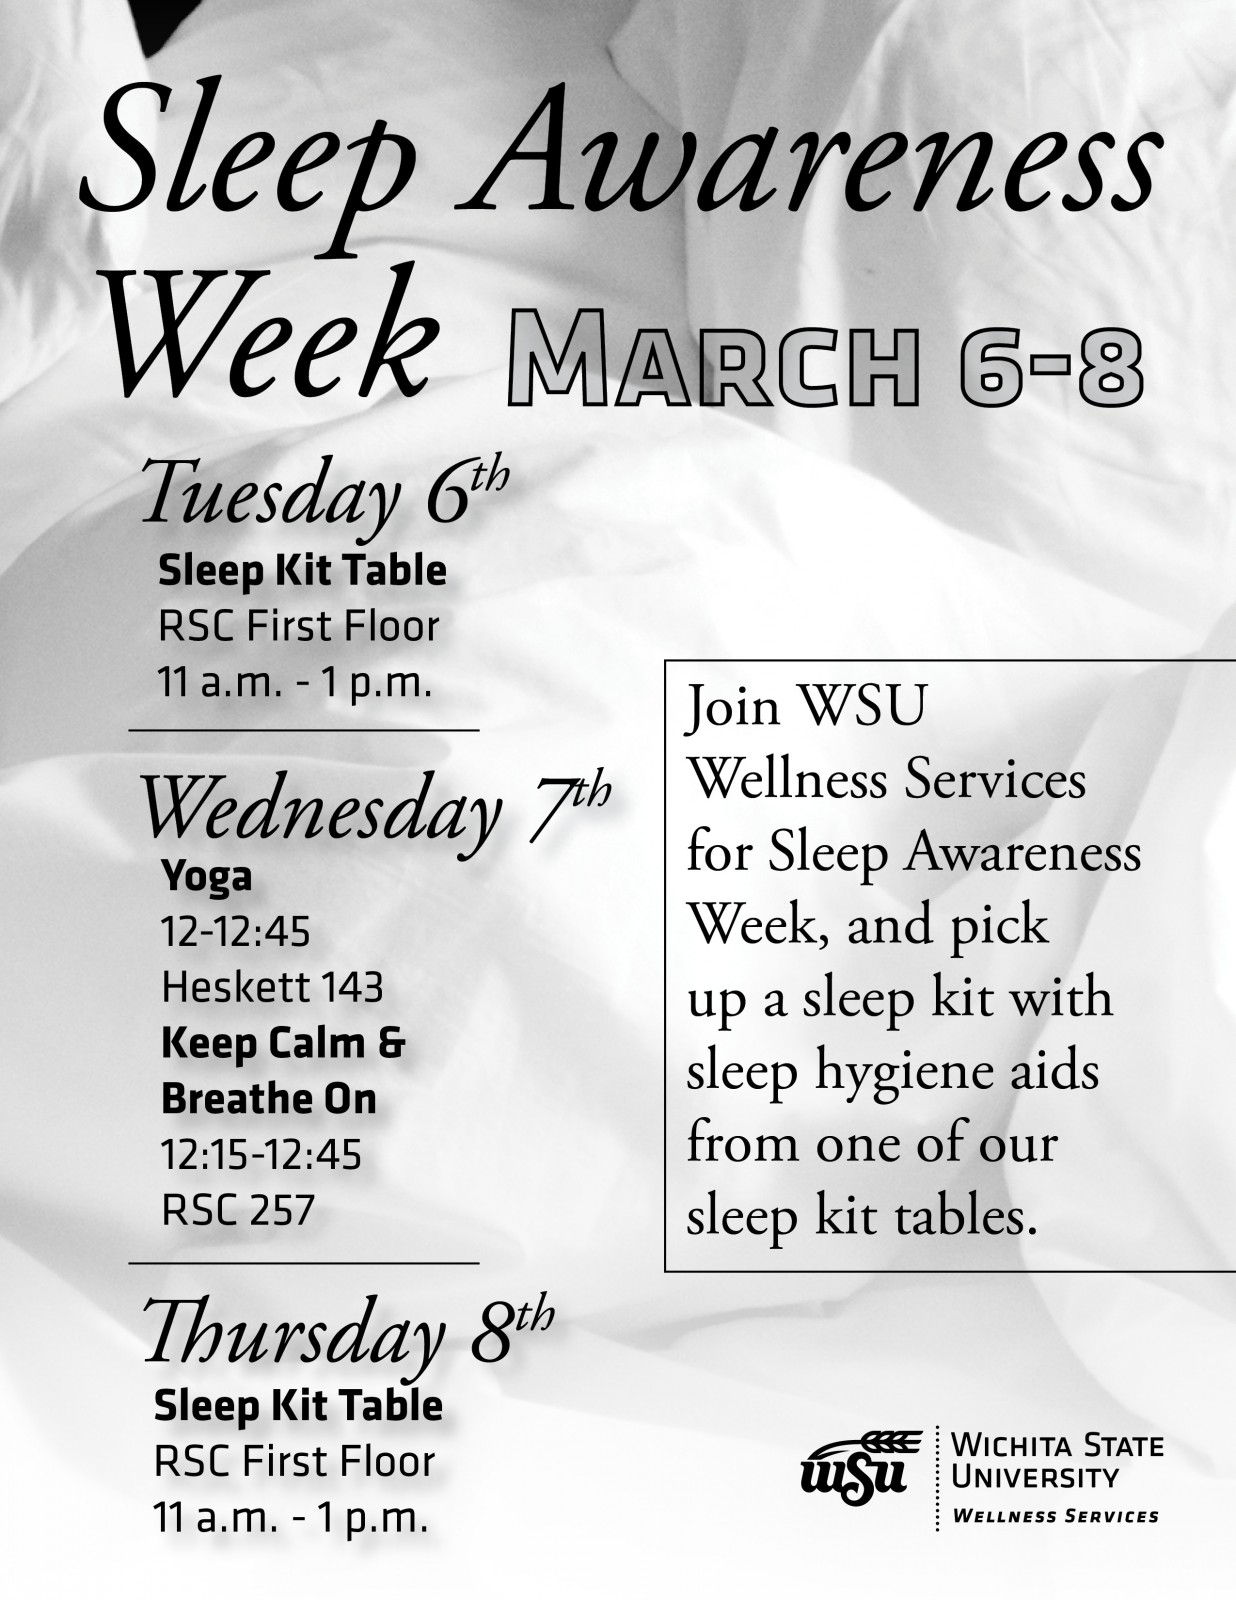 Sleep Awareness Week